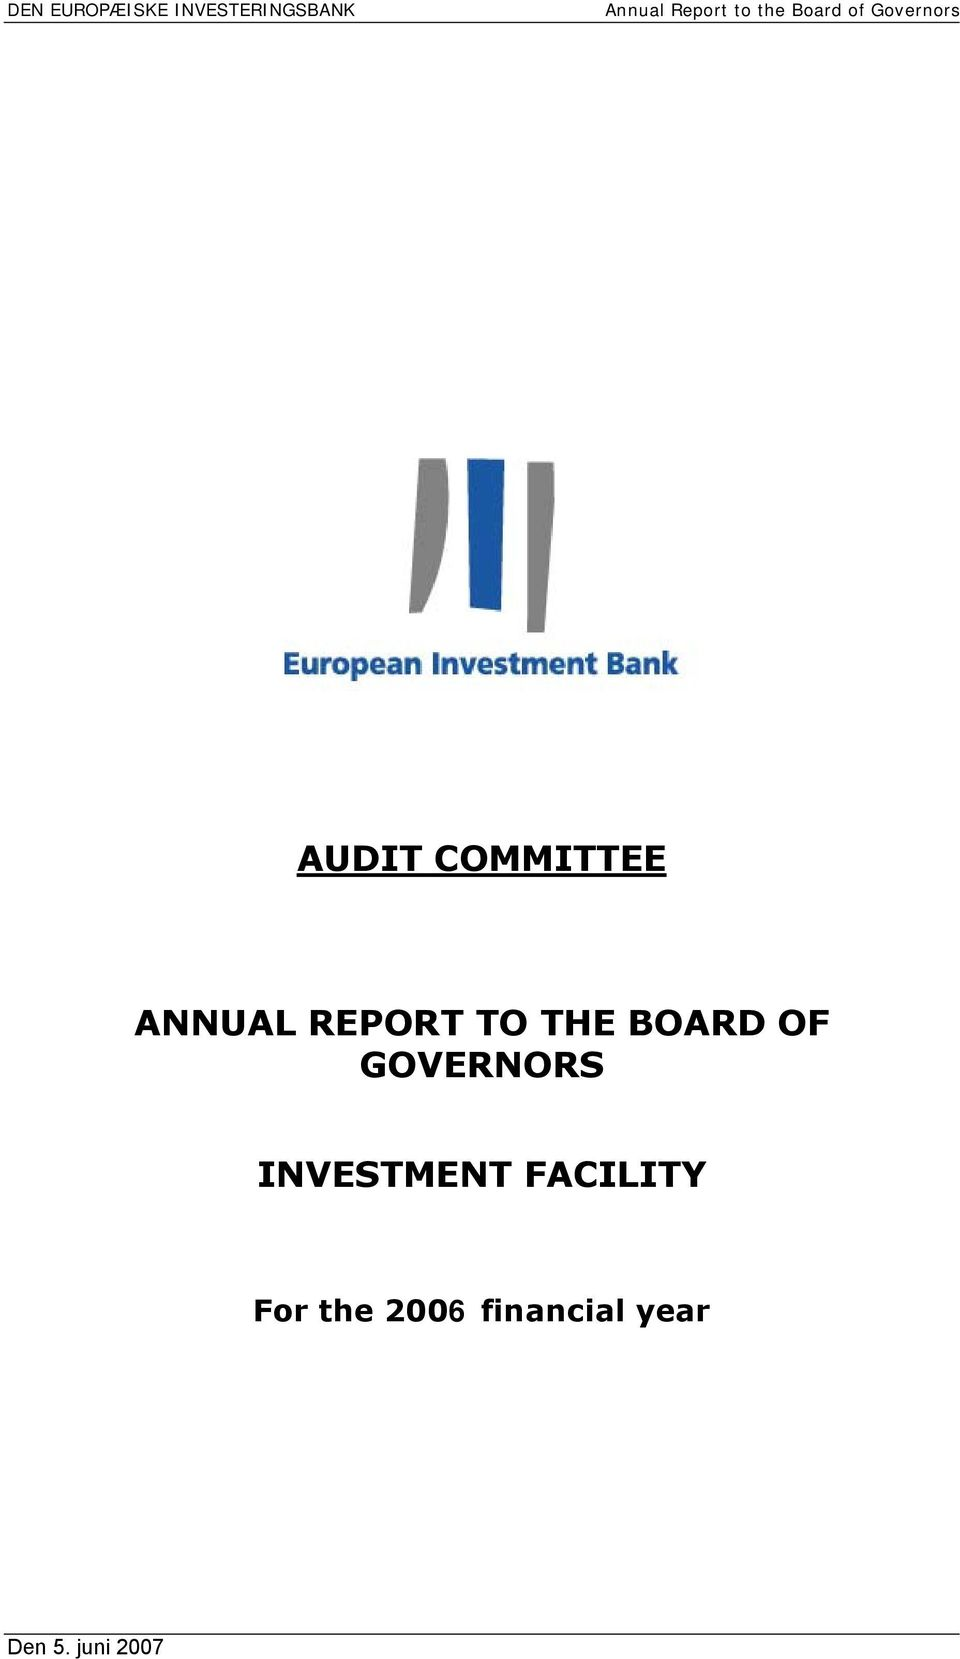 ANNUAL REPORT TO THE BOARD OF GOVERNORS